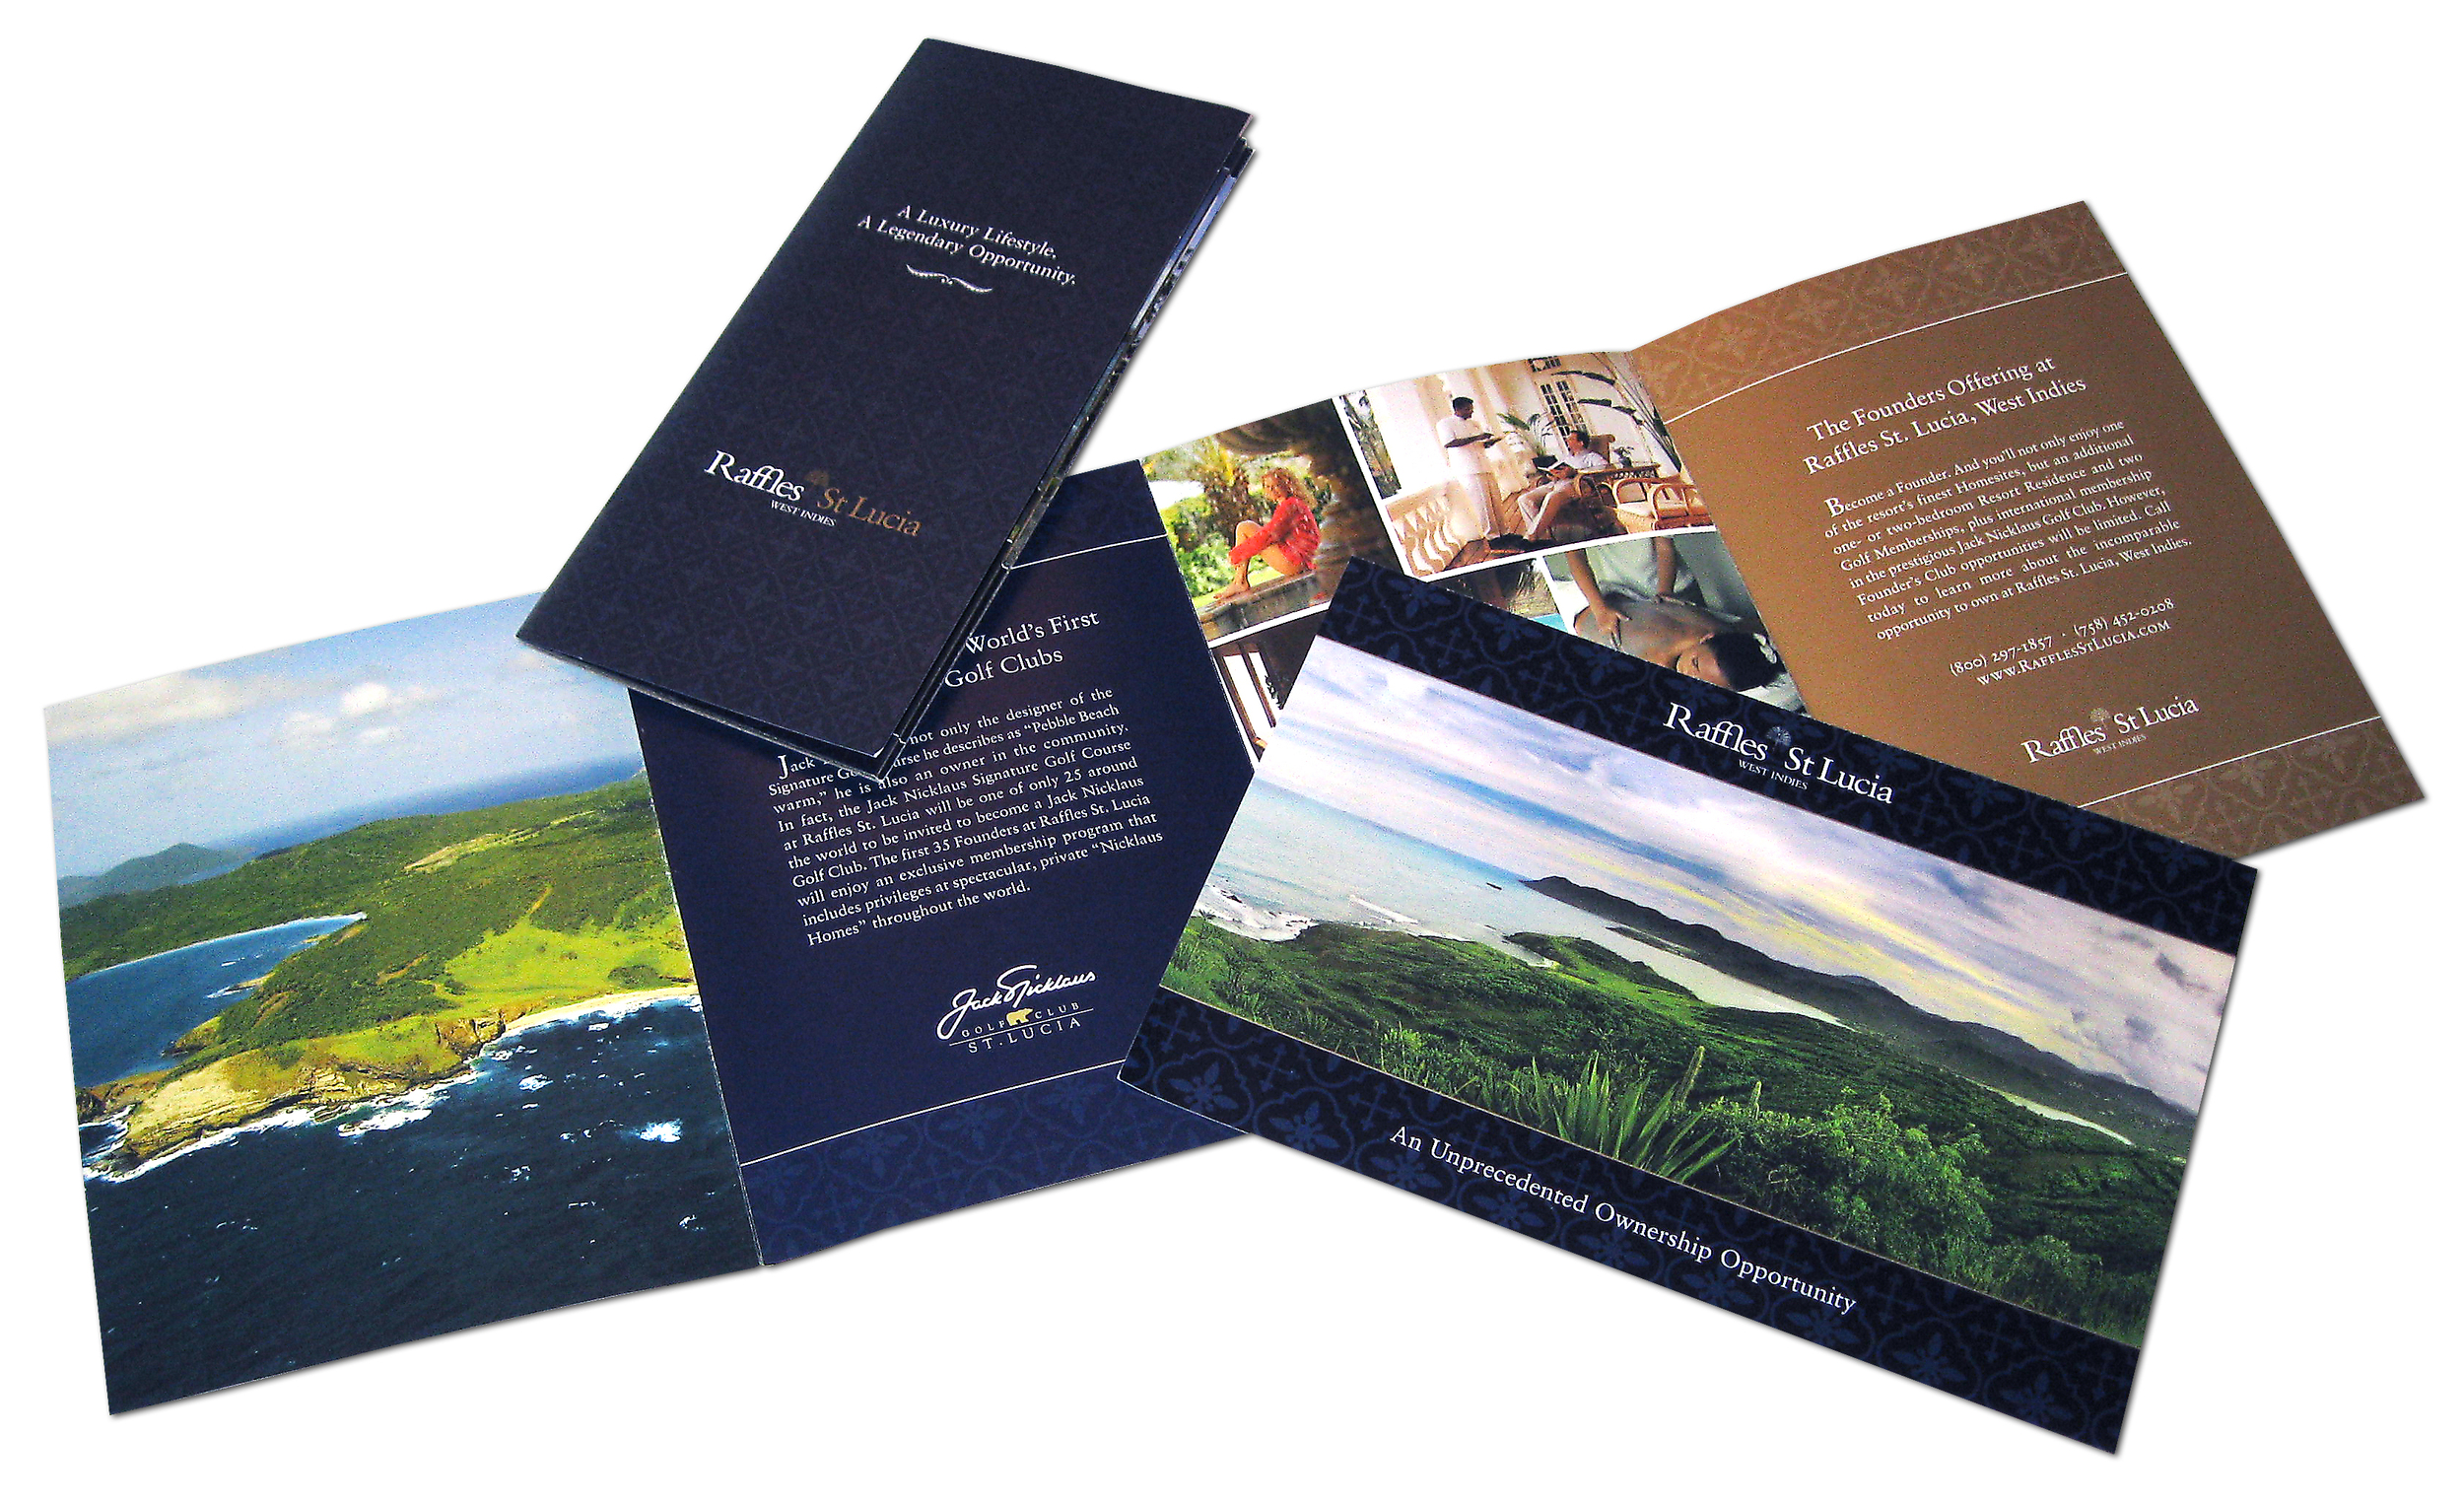 Raffles St. Lucia Direct Mail Materials